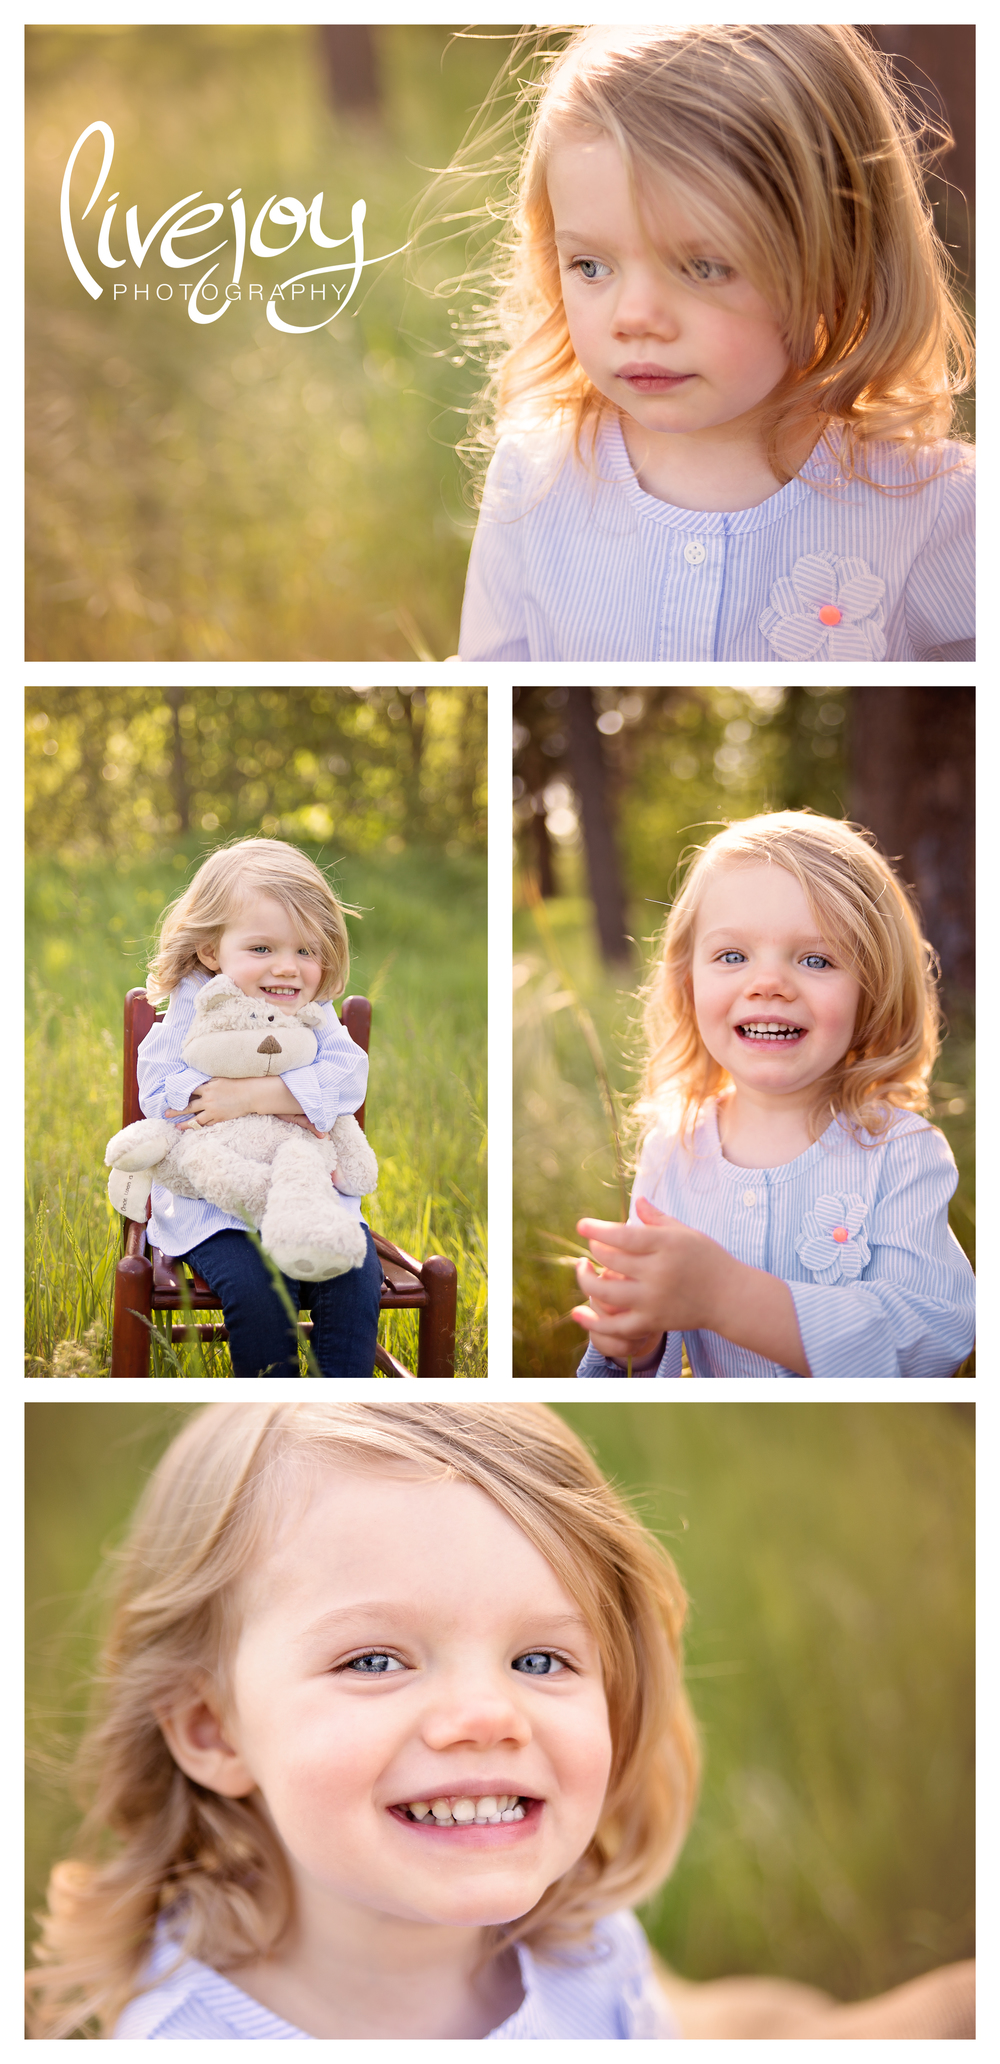 Child & Family Photography | Oregon | LiveJoy Photography